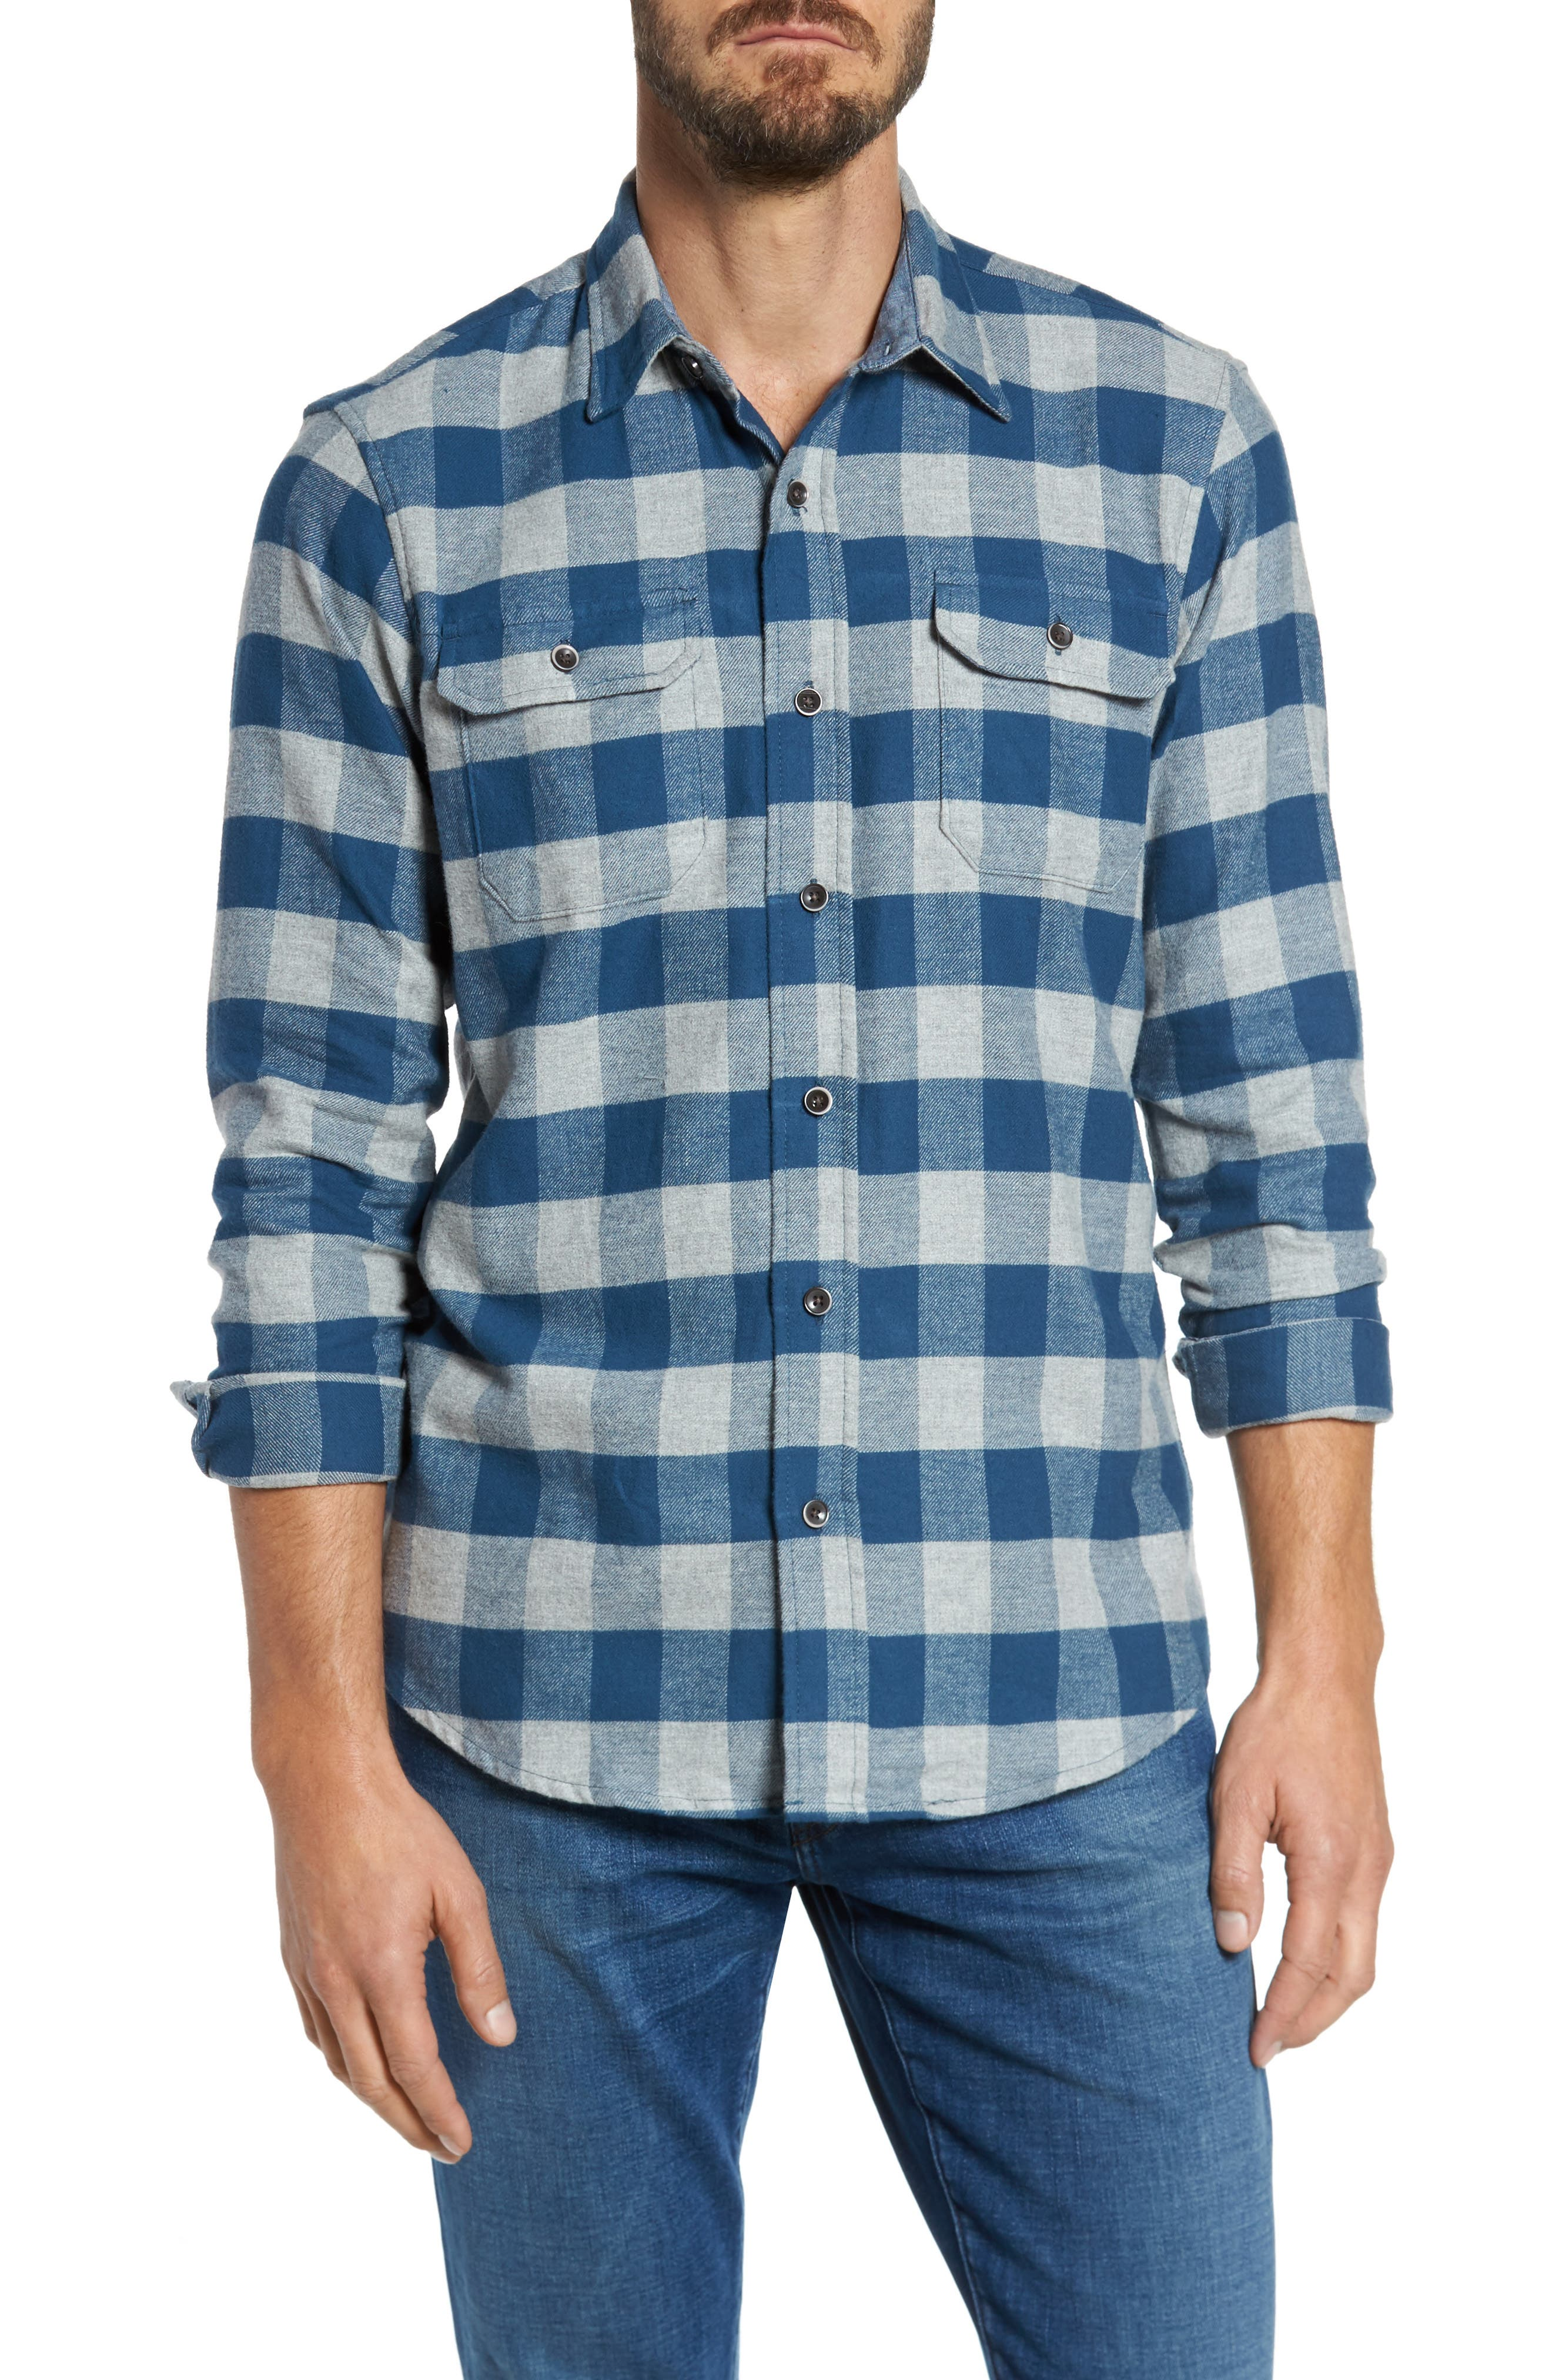 Buffalo Check Flannel Shirt,                         Main,                         color, Teal/ Med Grey Heather